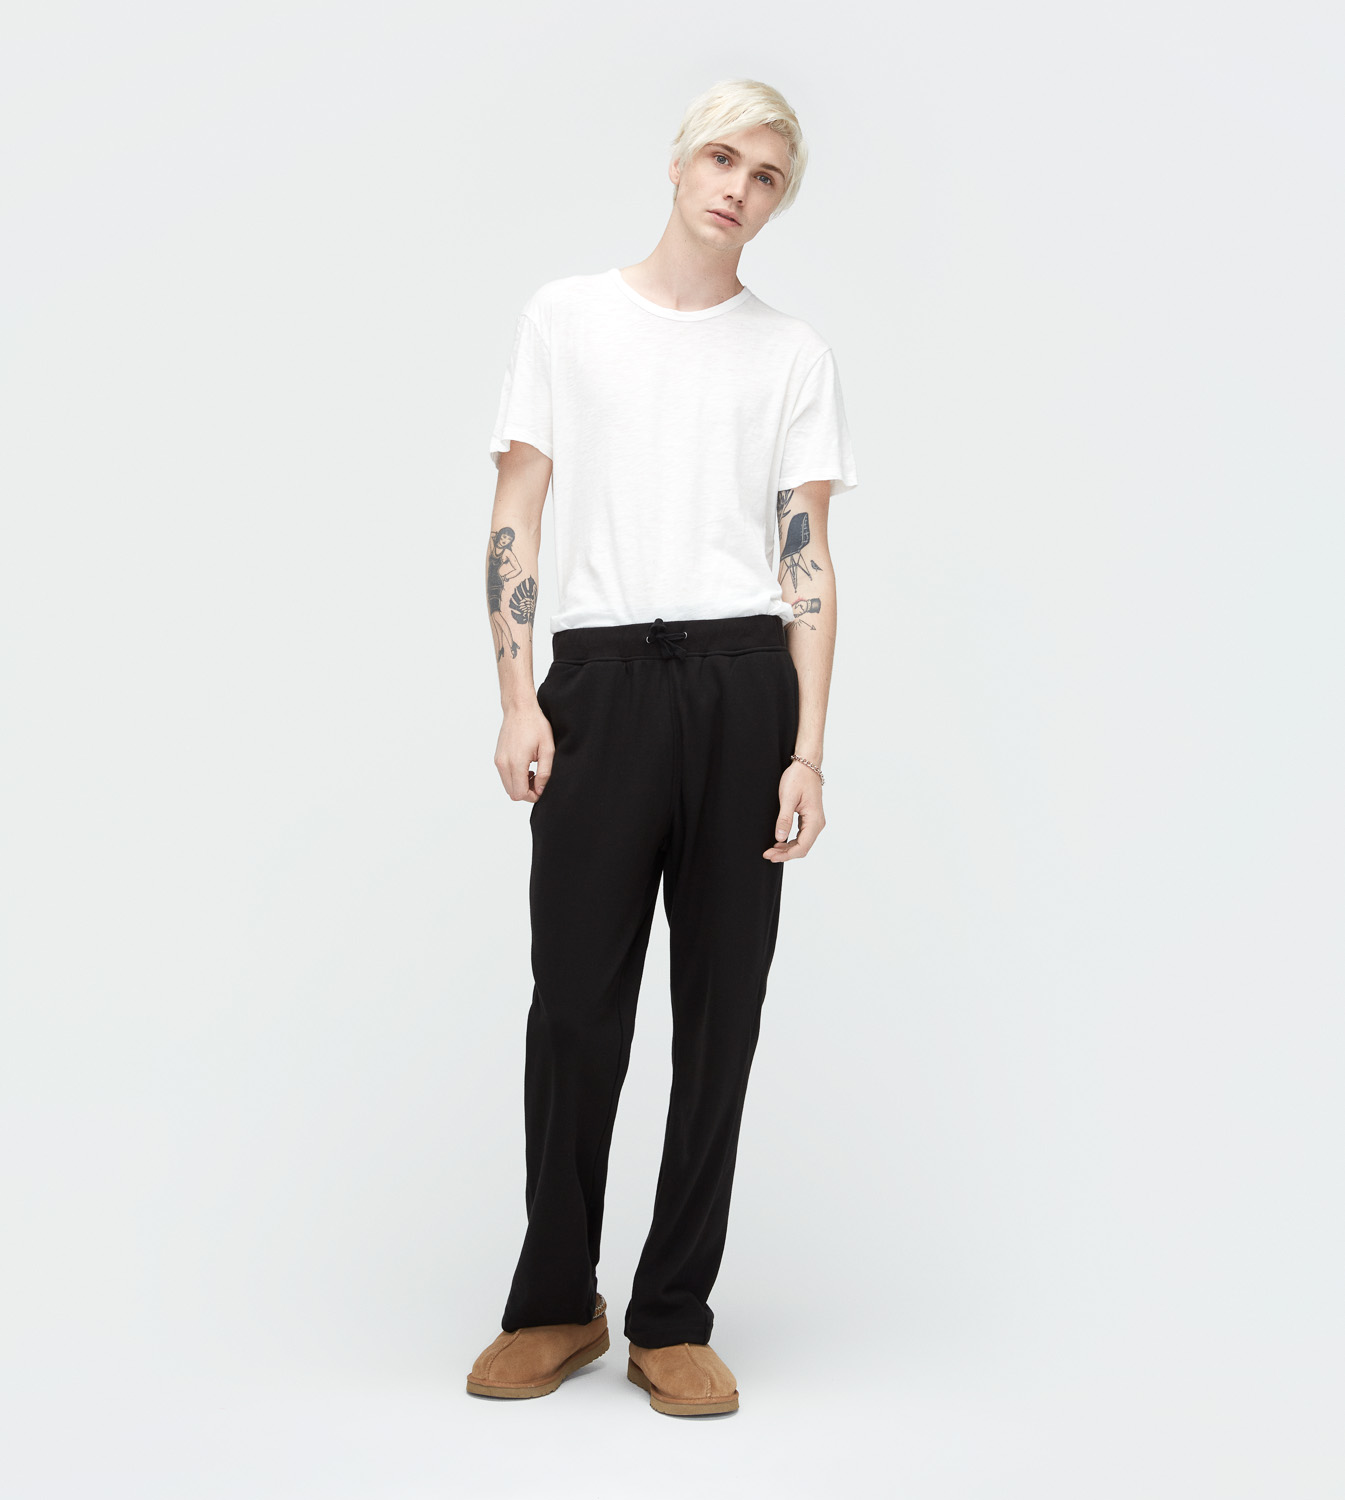 UGG Men's Wyatt Pant Cotton Blend Bottoms in Black, Size M These easy lounge pants are cast in our super-soft French terry with a relaxed fit. Wear for slow mornings at home or out to breakfast with sneakers and a tee. Lightweight Double-Knit Fleece: 92% Cotton, 8% Spandex with 100% Polyester Pile. Relaxed fit. Rib waistband with twill drawcord. Side pockets. 30.5  inseam (size M). UGG Men's Wyatt Pant Cotton Blend Bottoms in Black, Size M